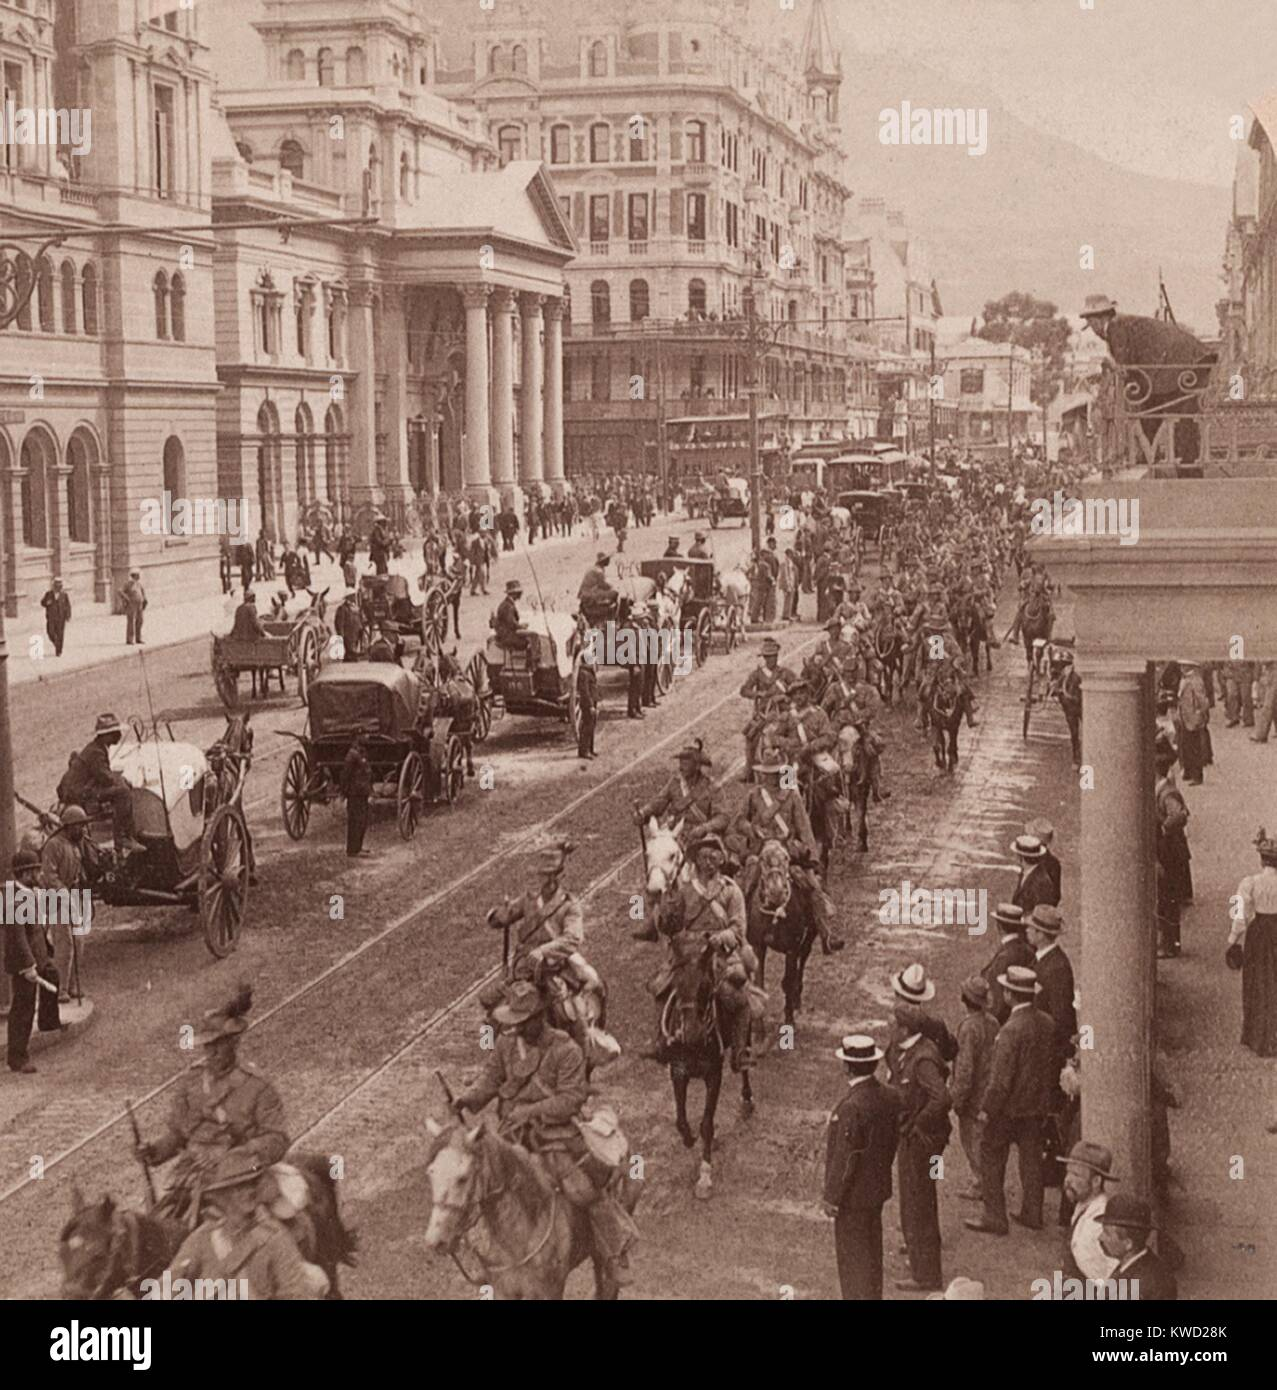 Imperial Light Horse Regiment marching down Adderly St. in Cape Town, Feb. 26, 1900. The reinforcements were enroute - Stock Image